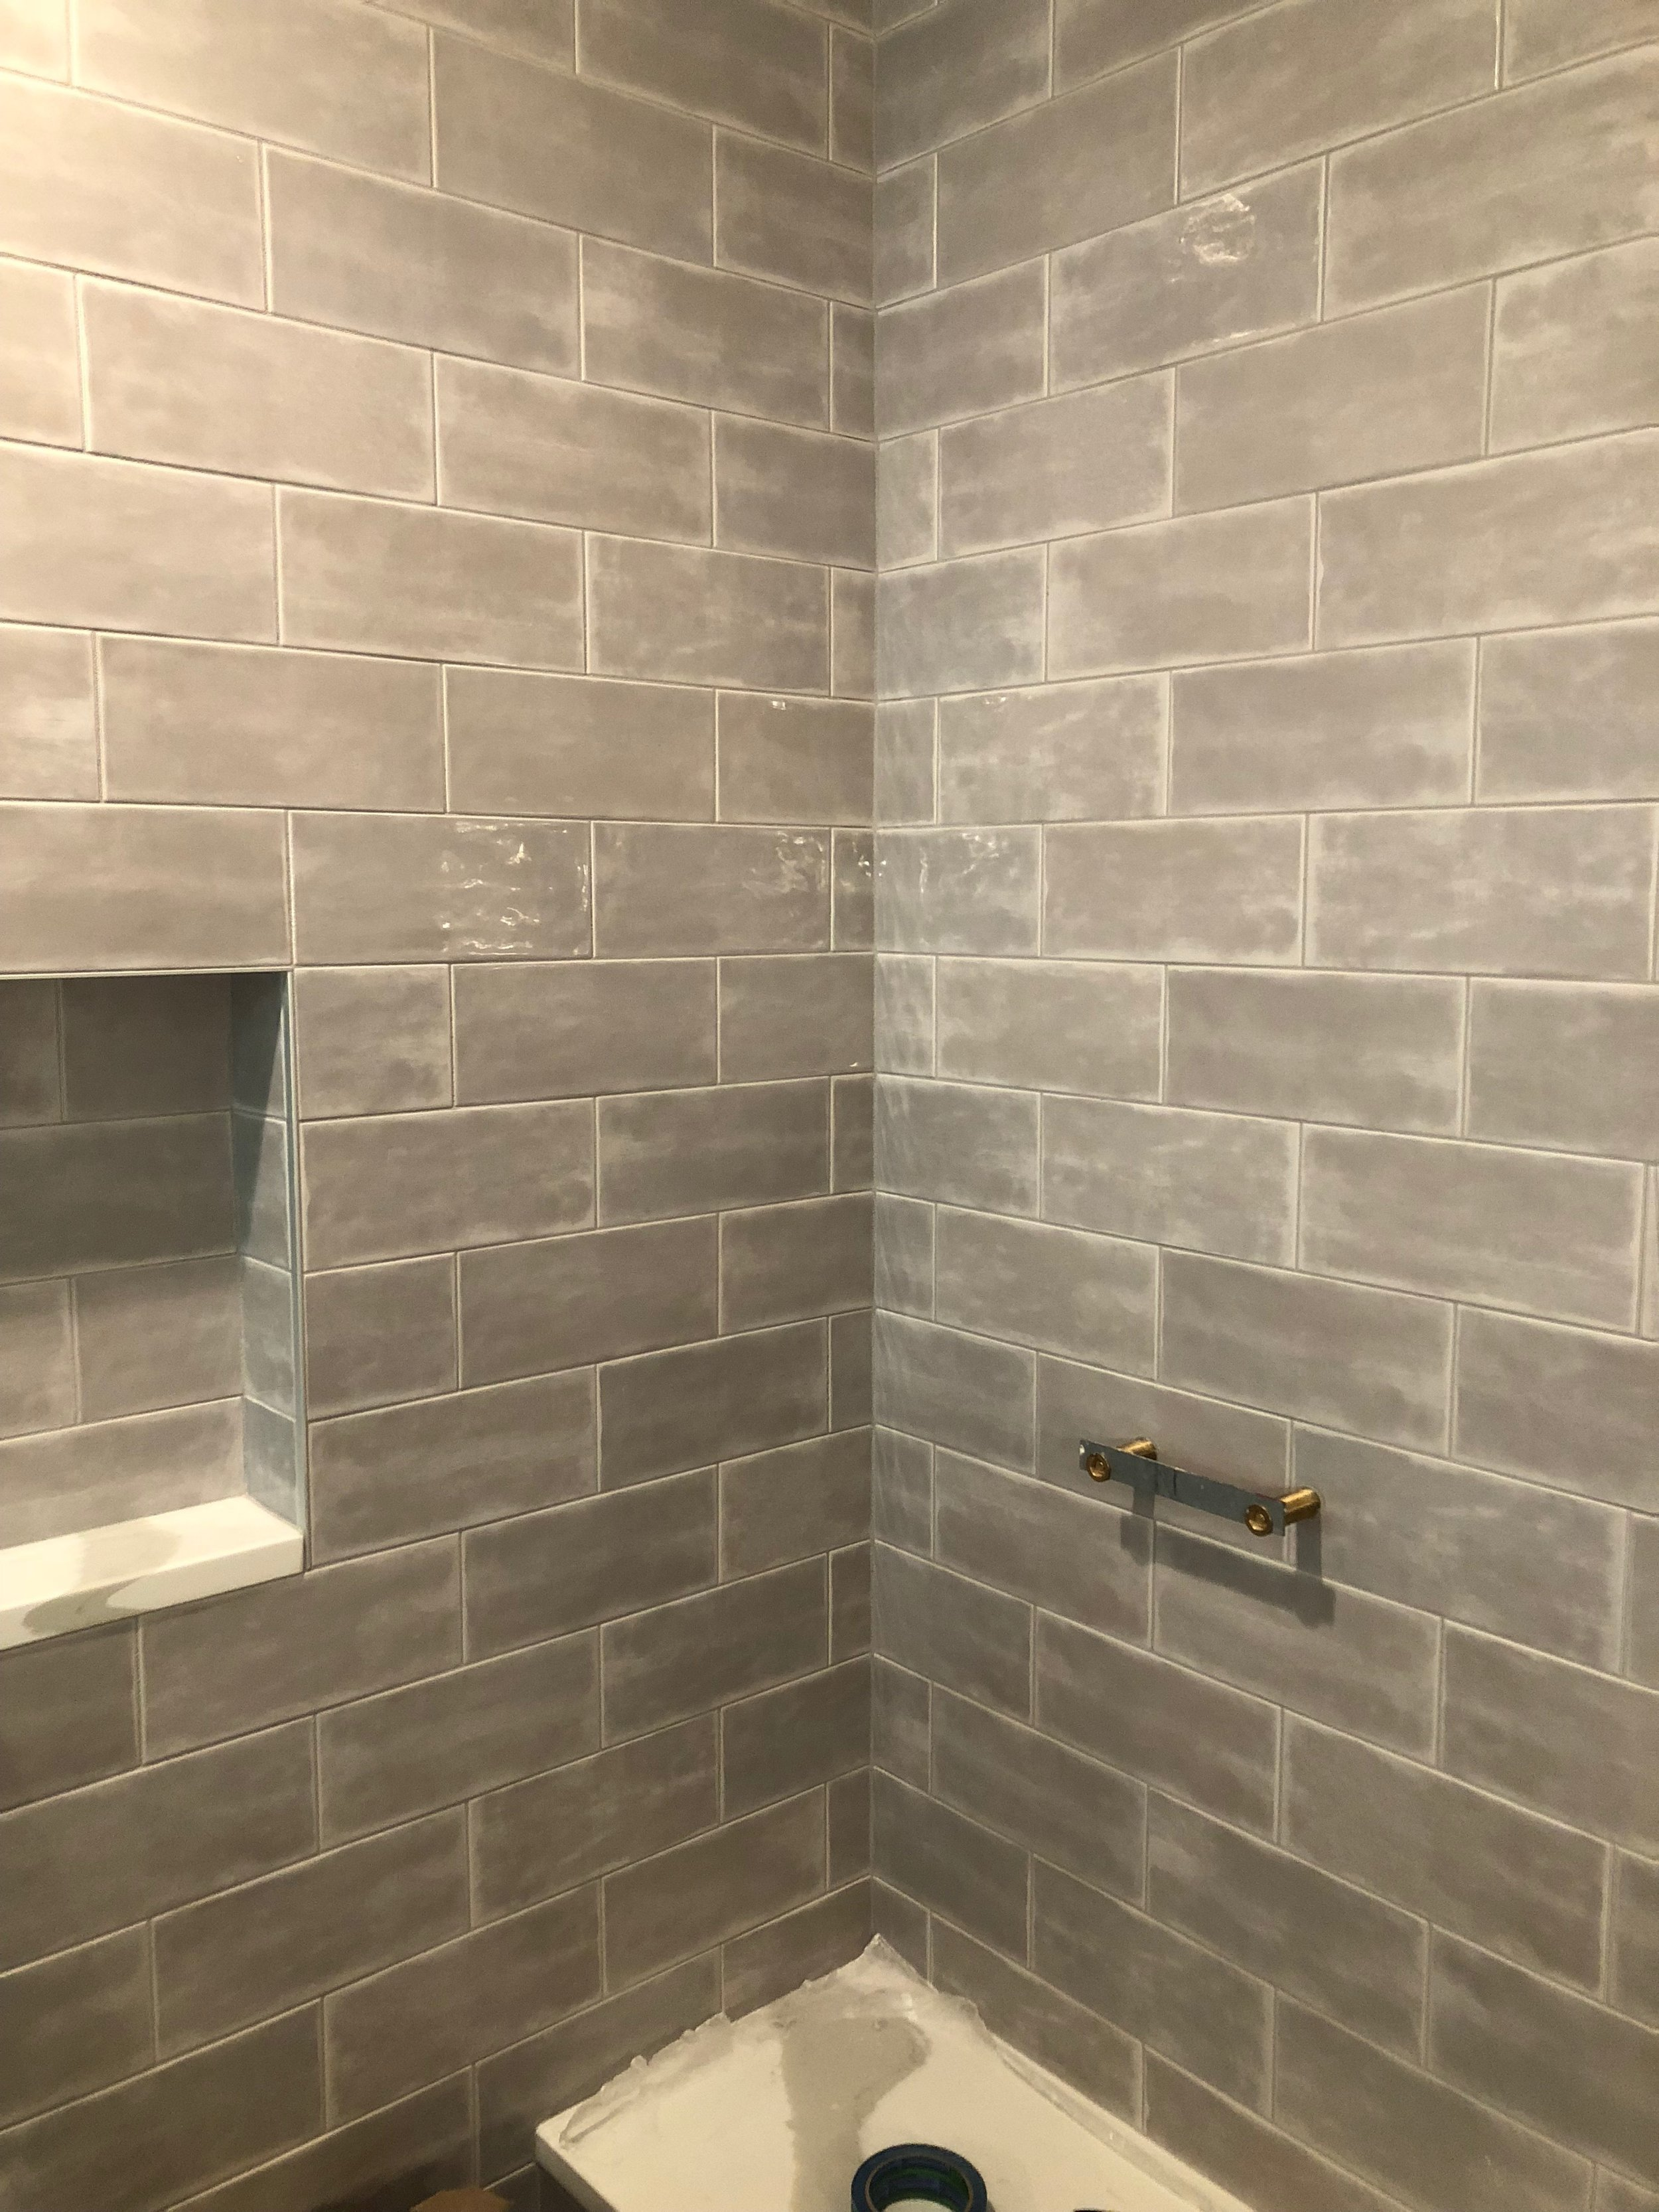 Speaking of tile turning a corner… look at this corner!! How beautiful?! Our tile guy is truly phenomenal!